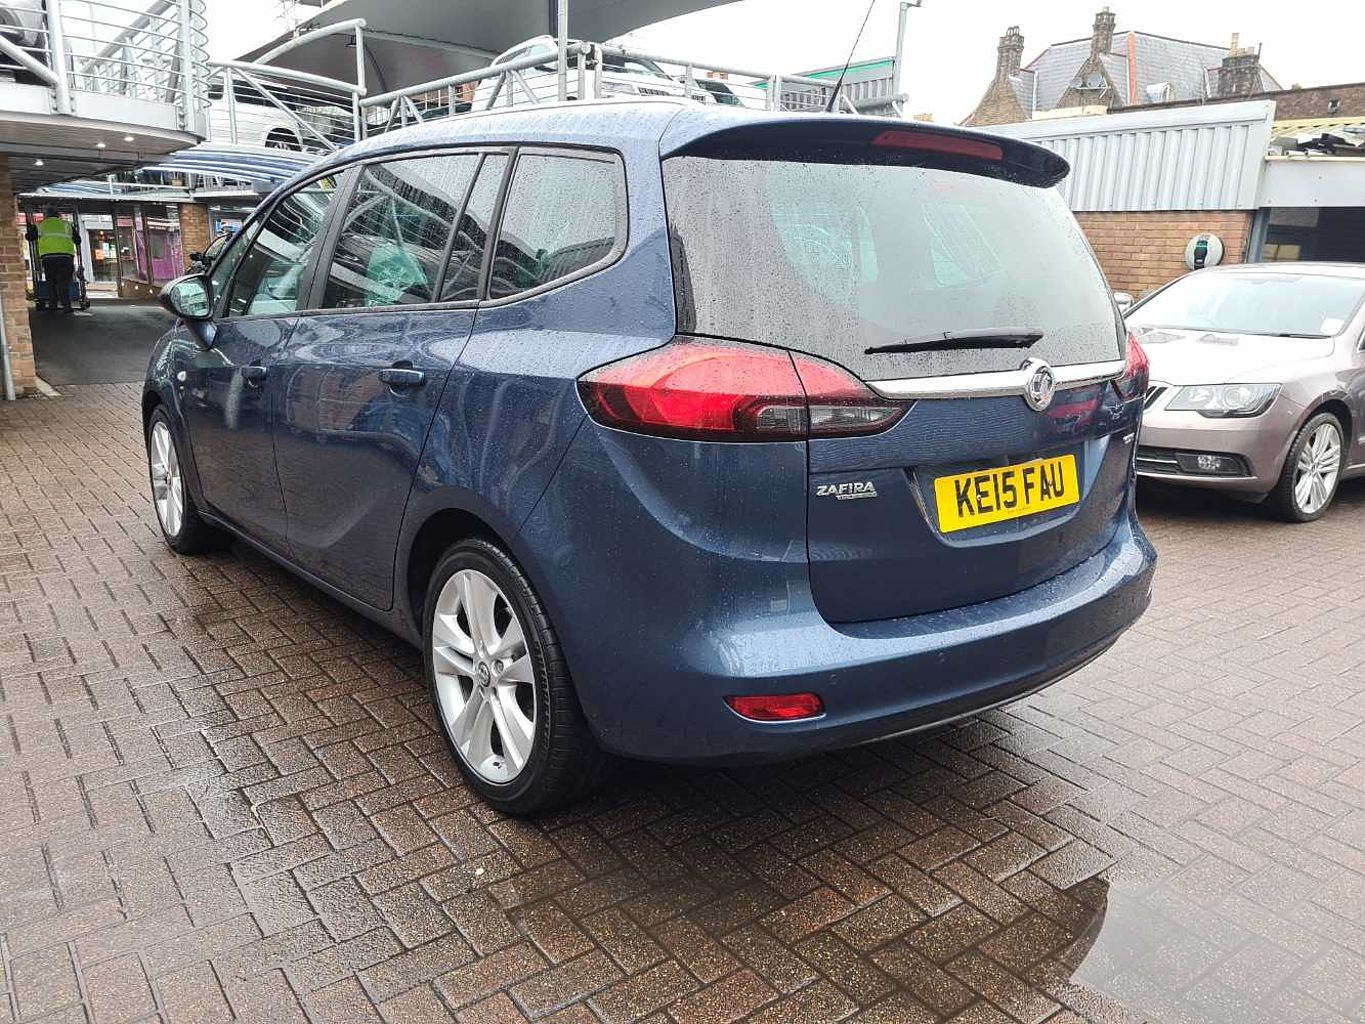 Vauxhall Zafira Tourer 2.0 CDTi 16v (130PS) SRi 5-Door MPV